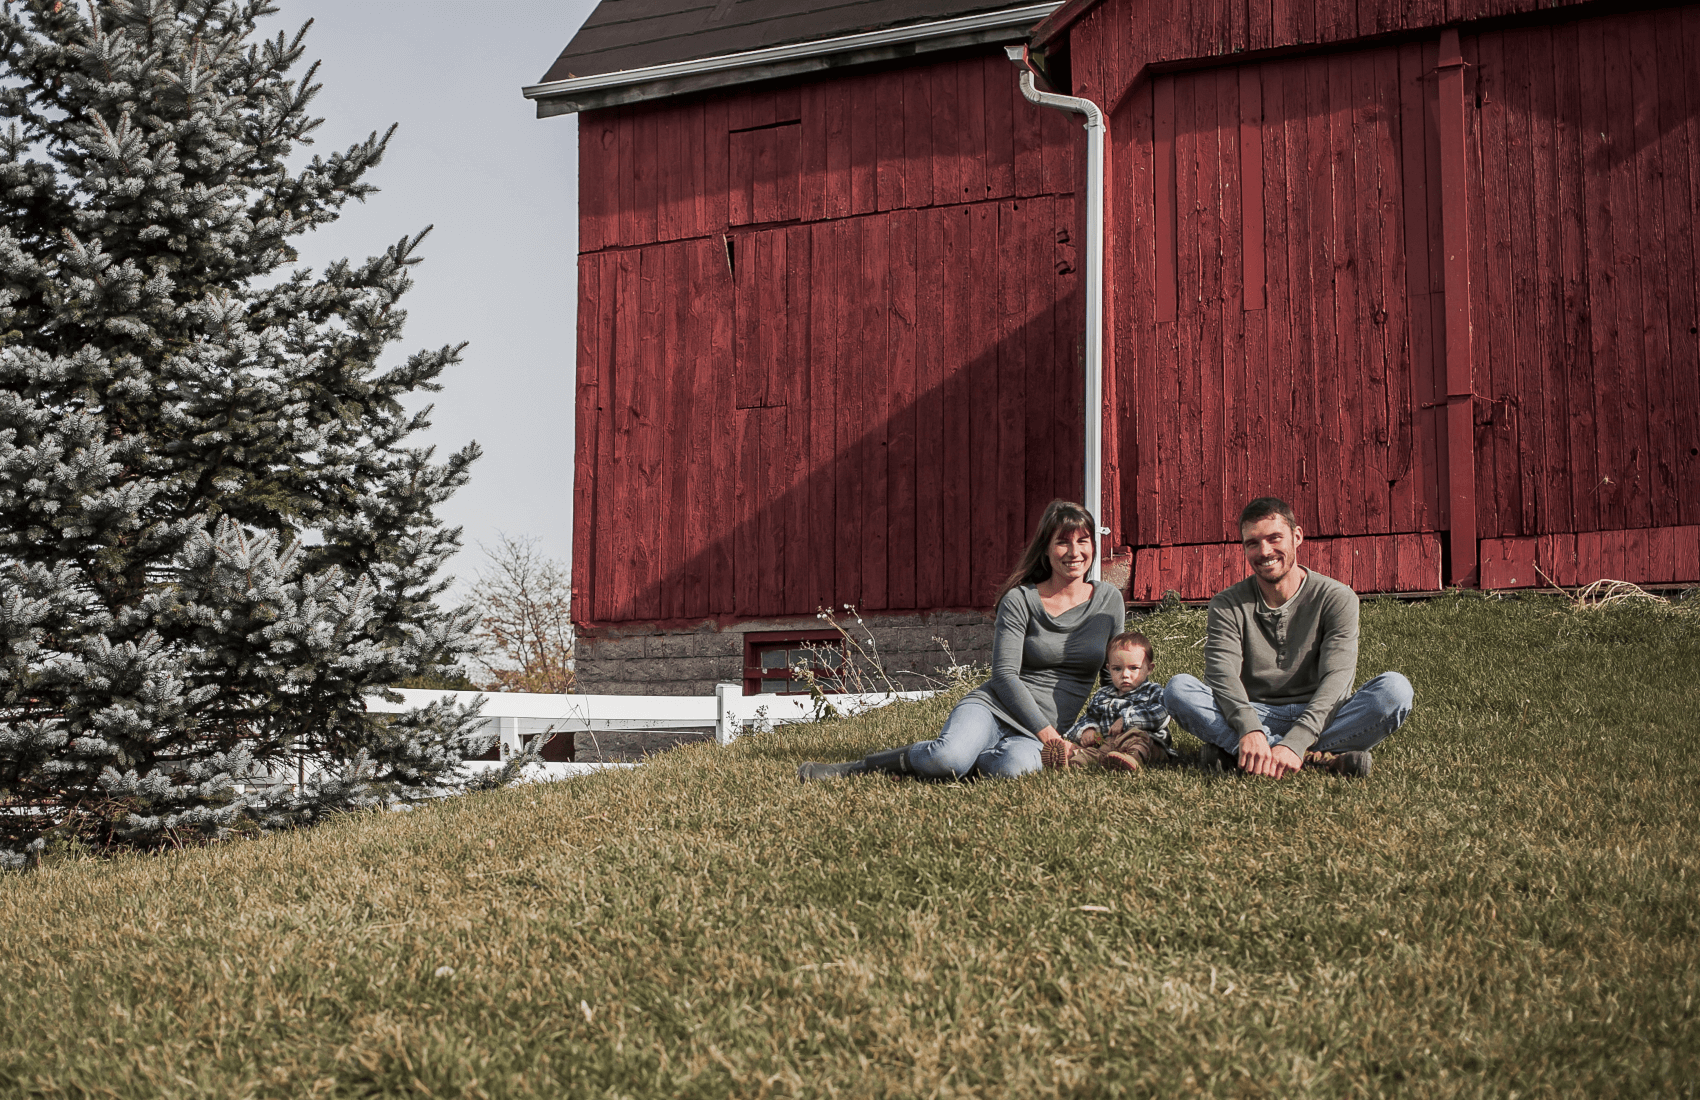 owners with son sitting in front of barn